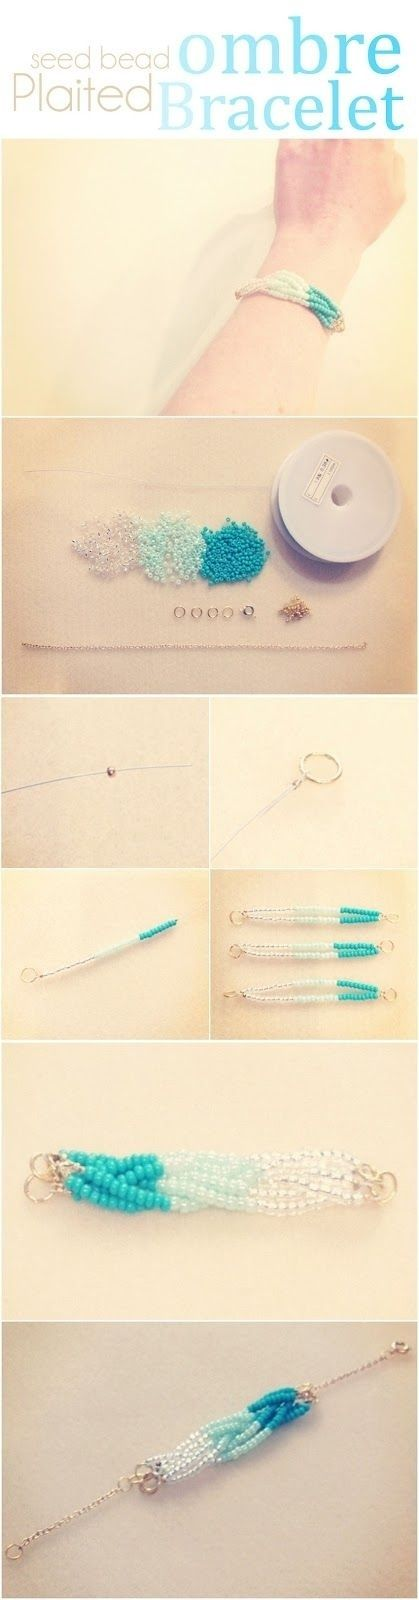 Or, go for an Ombre Braid | Community Post: 24 Super Easy DIY Bracelets